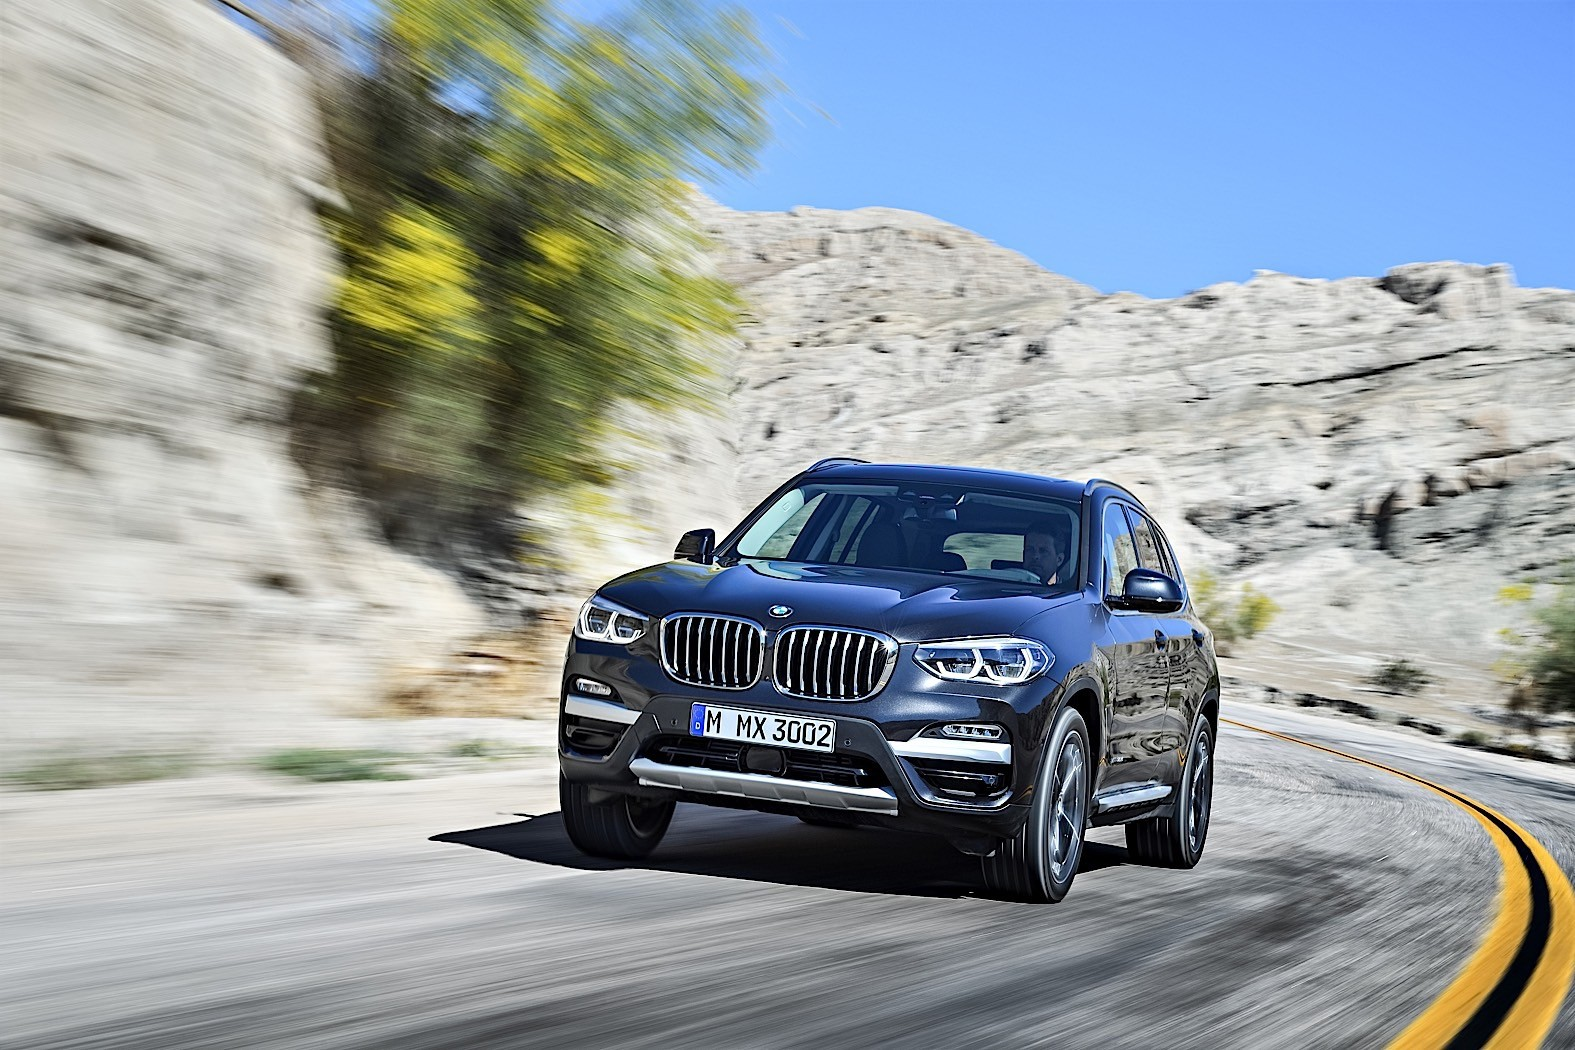 BMW Convertible bmw x3 manufacturing plant 2018 BMW X3 (G01) Confirmed For Production In China - autoevolution